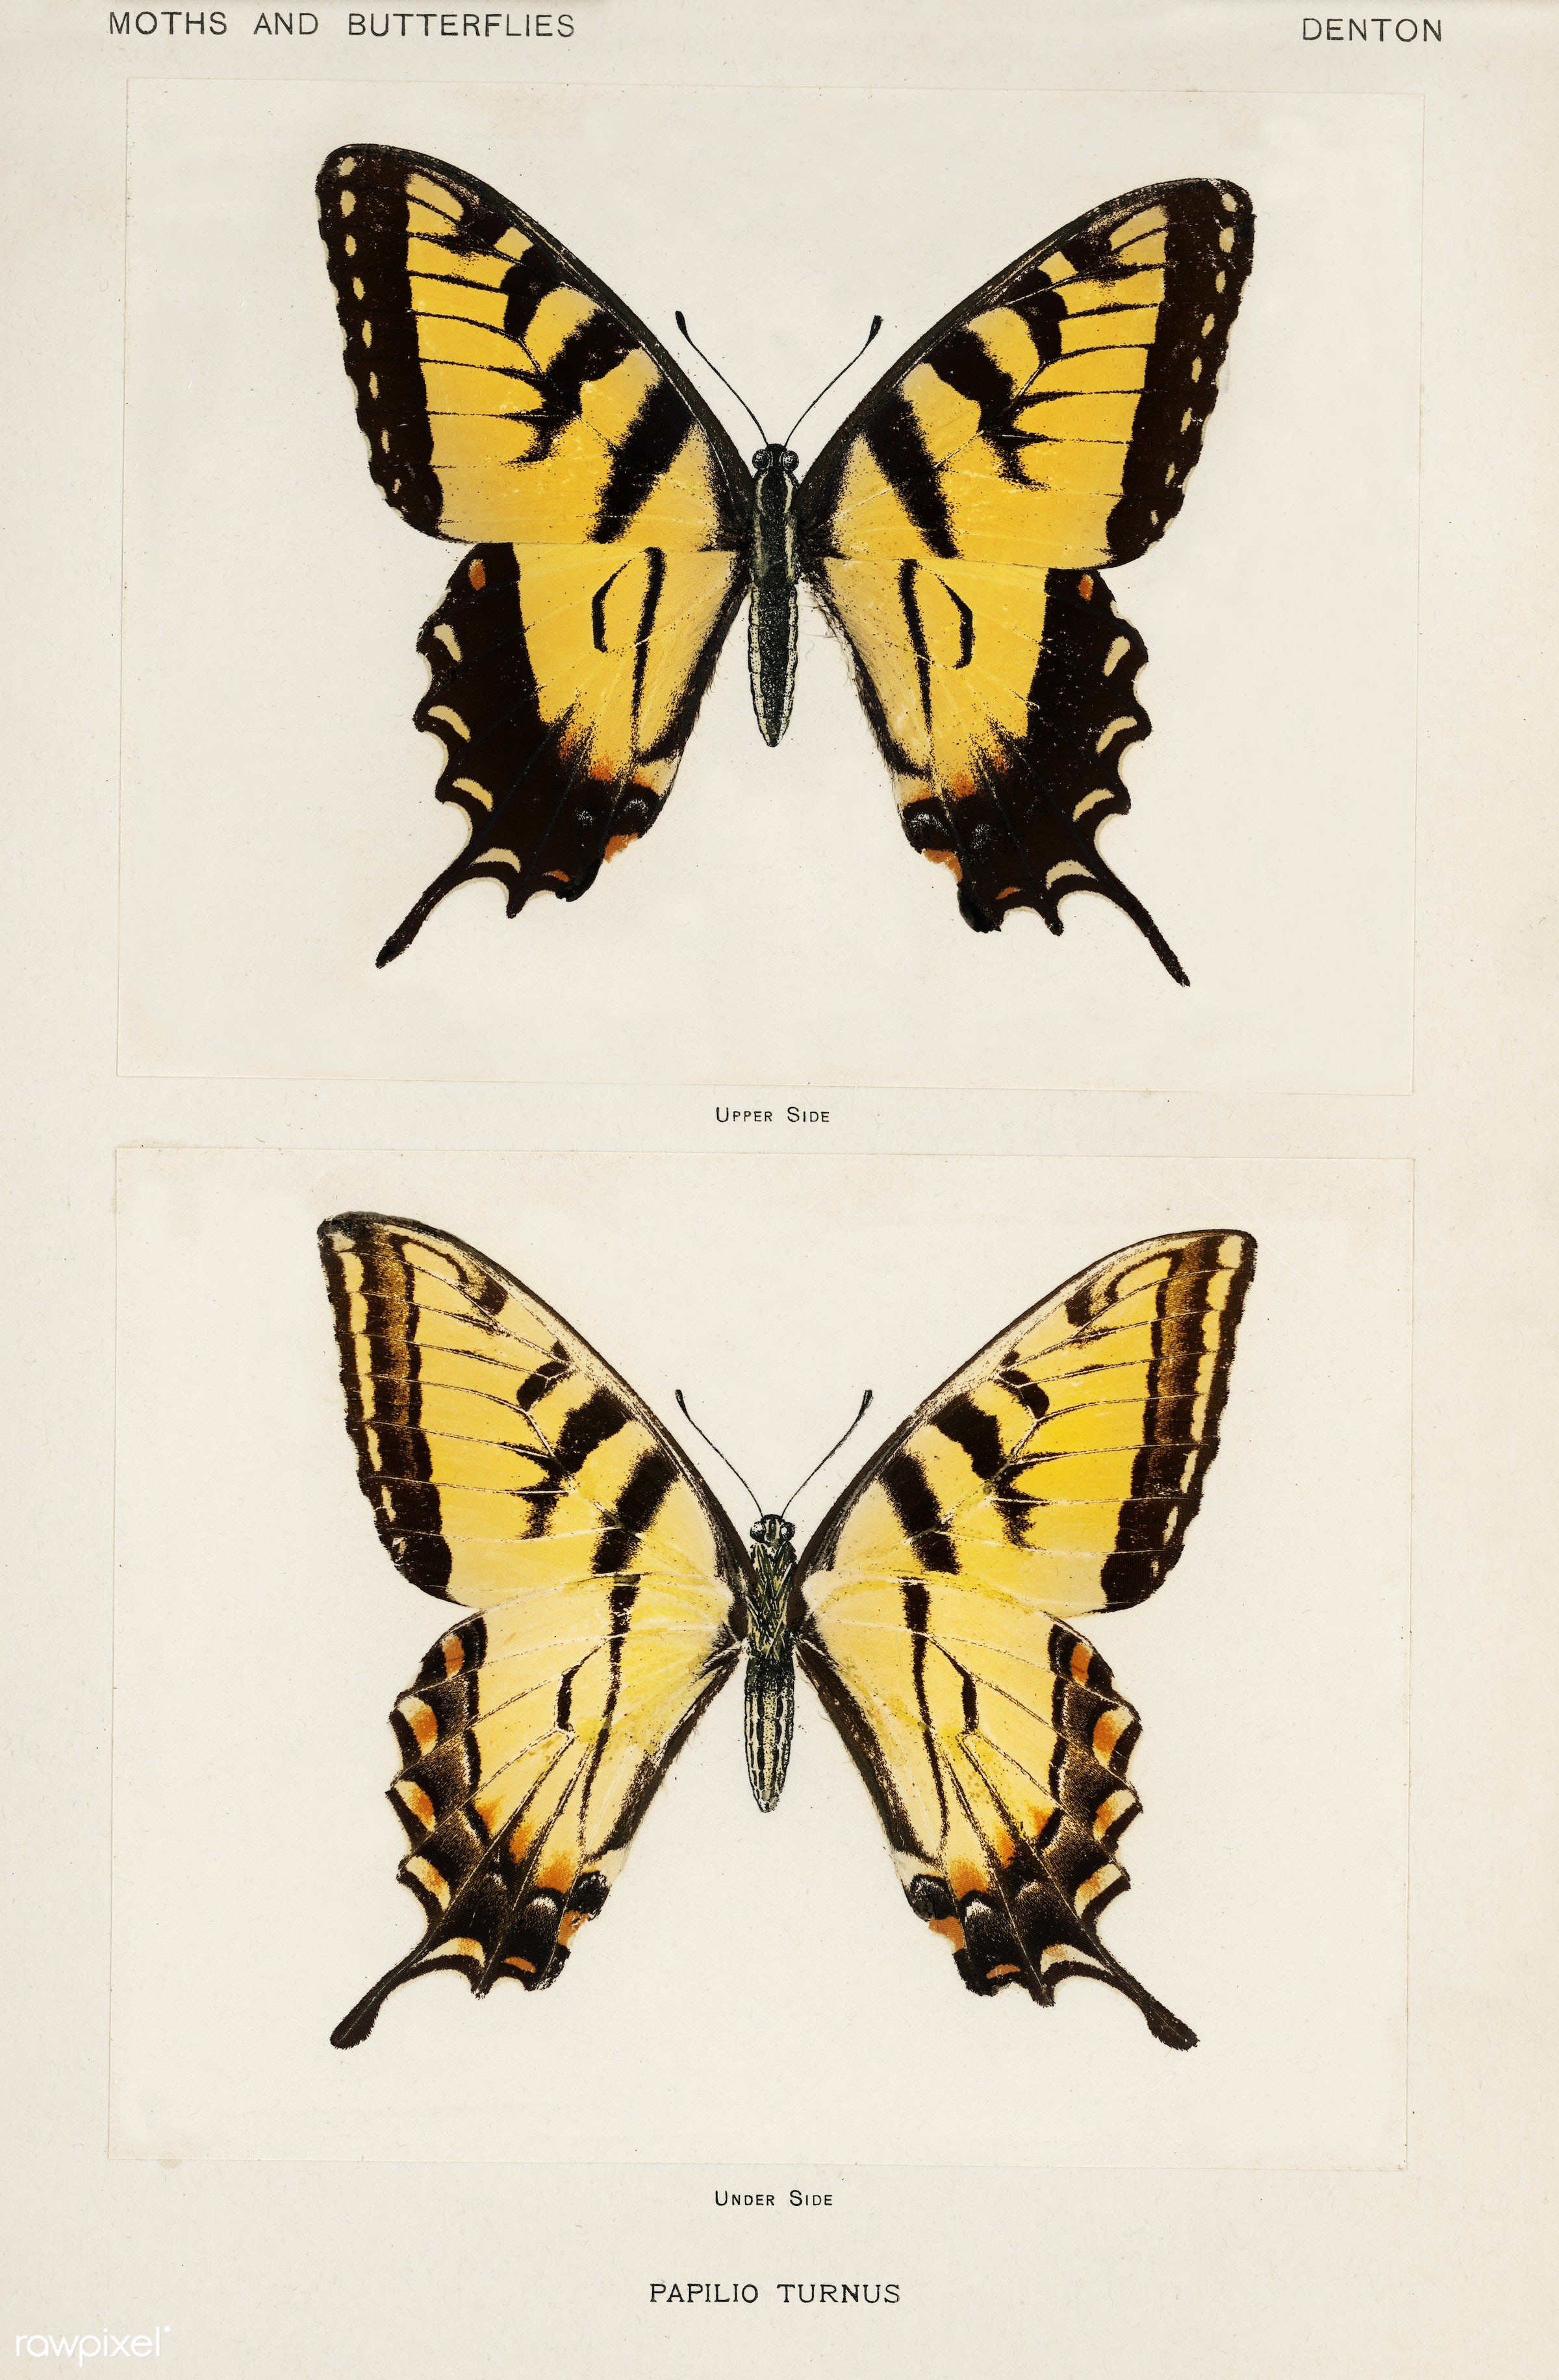 Eastern Tiger Swallowtail (Papilio Turnus) from Moths and butterflies of the United States (1900) by Sherman F. Denton (1856...